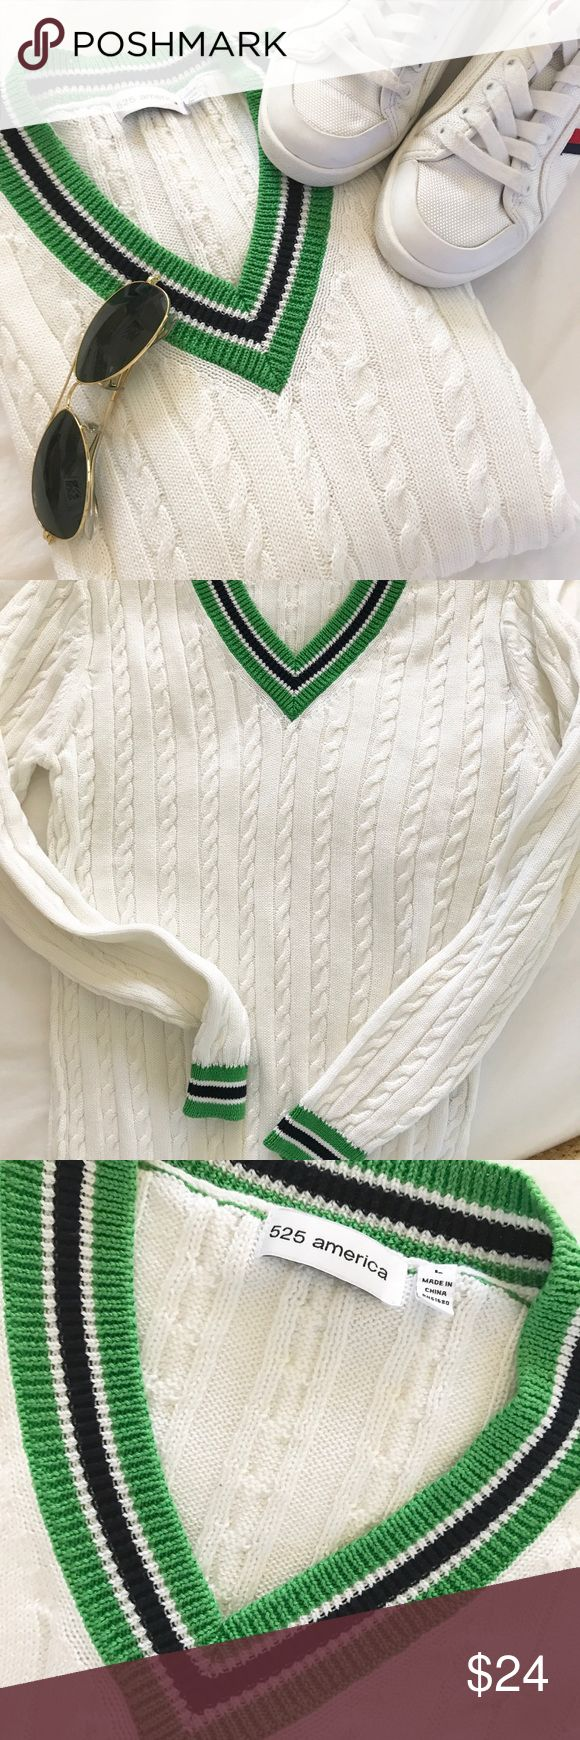 "525 America Preppy Tennis 🎾 Sweater SZ M 525 America Preppy Tennis 🎾 Sweater SZ M White Navy Green 16"" across shoulders  24"" arm length  18"" under arms  25"" shoulder to hem  Microscopic markings I believe are playing tricks on my eyes . I don't think that are marks, but in the knit. I couldn't even capture them in a photo. Hence the lower asking price. 525 America Sweaters V-Necks"